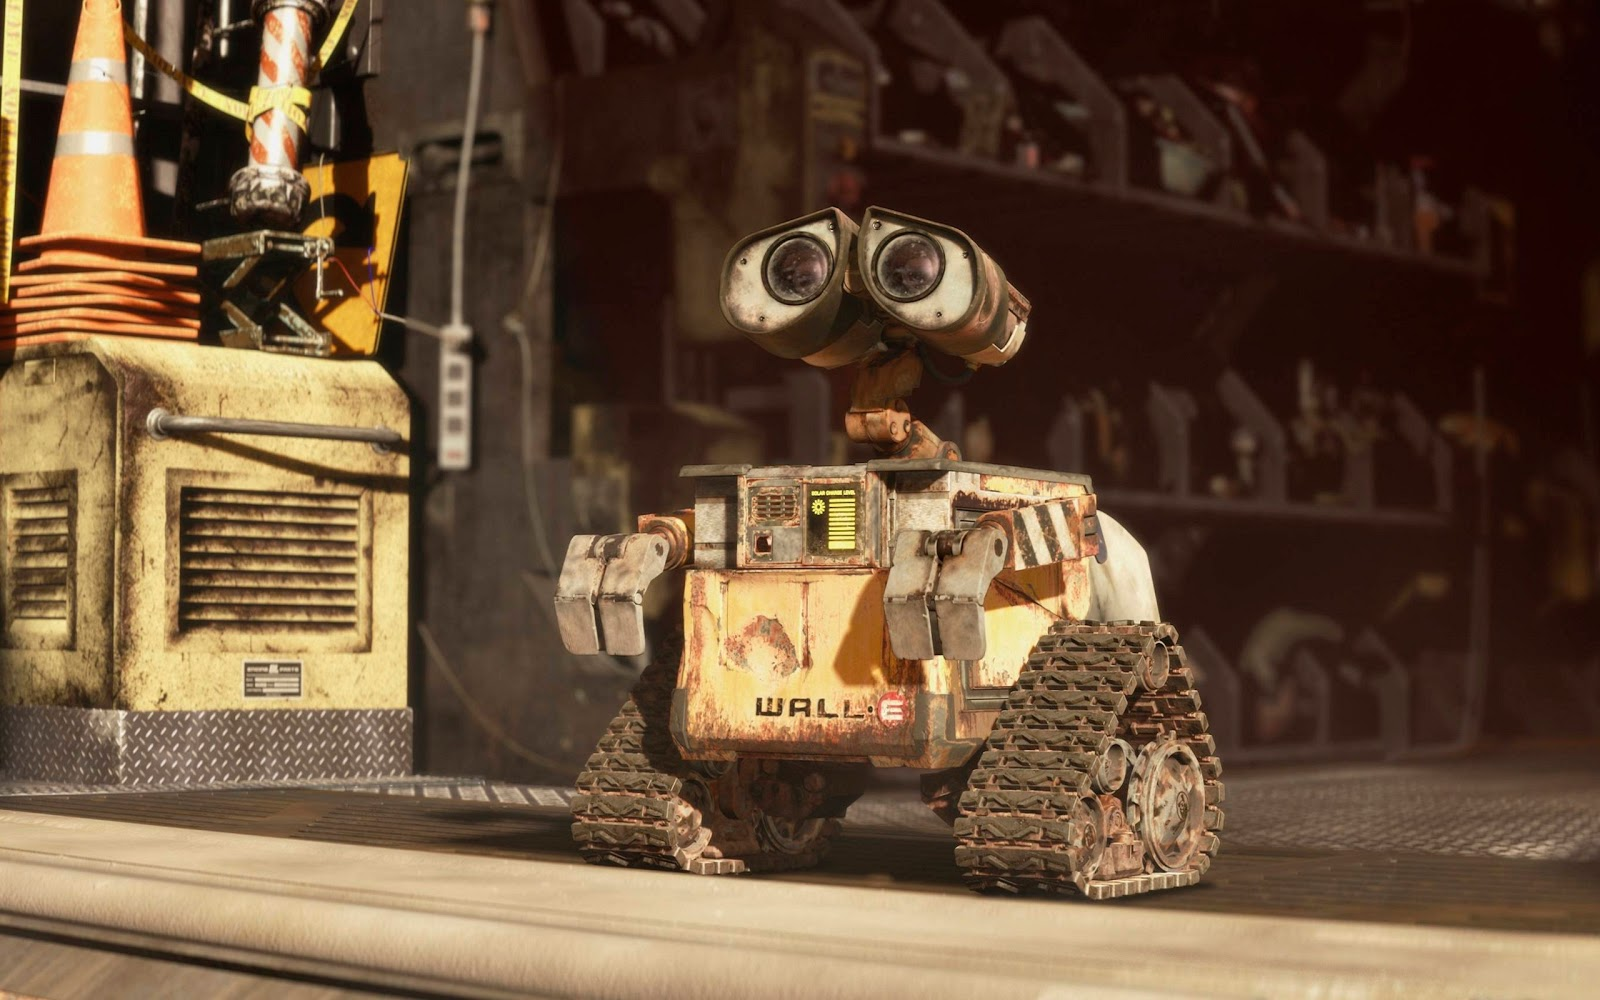 wall e 2008 full movie free download 720p | movies,cartoons,games